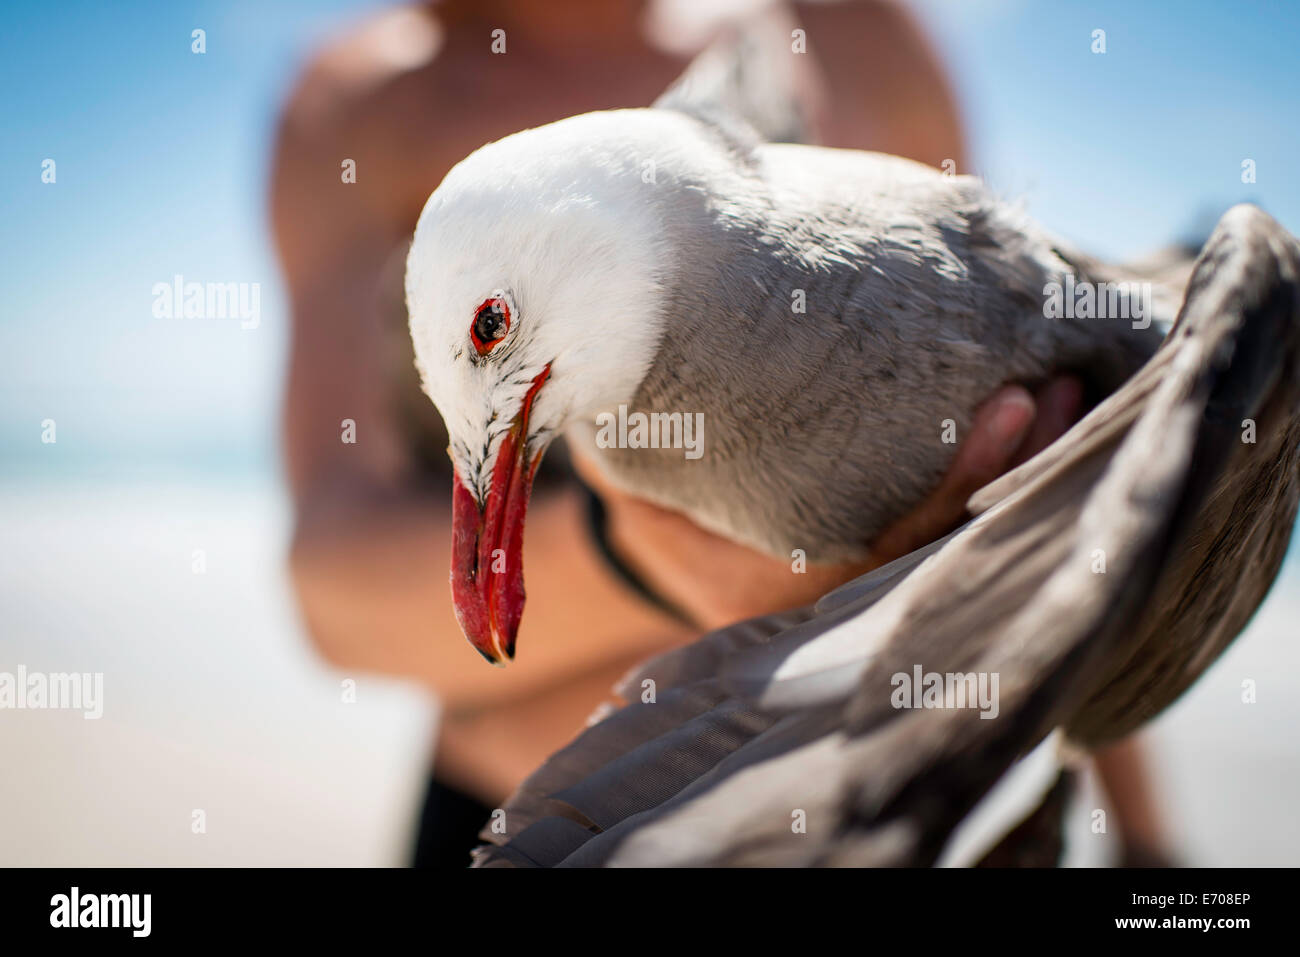 Mid adult male holding mouette, se concentrer sur seagull Photo Stock